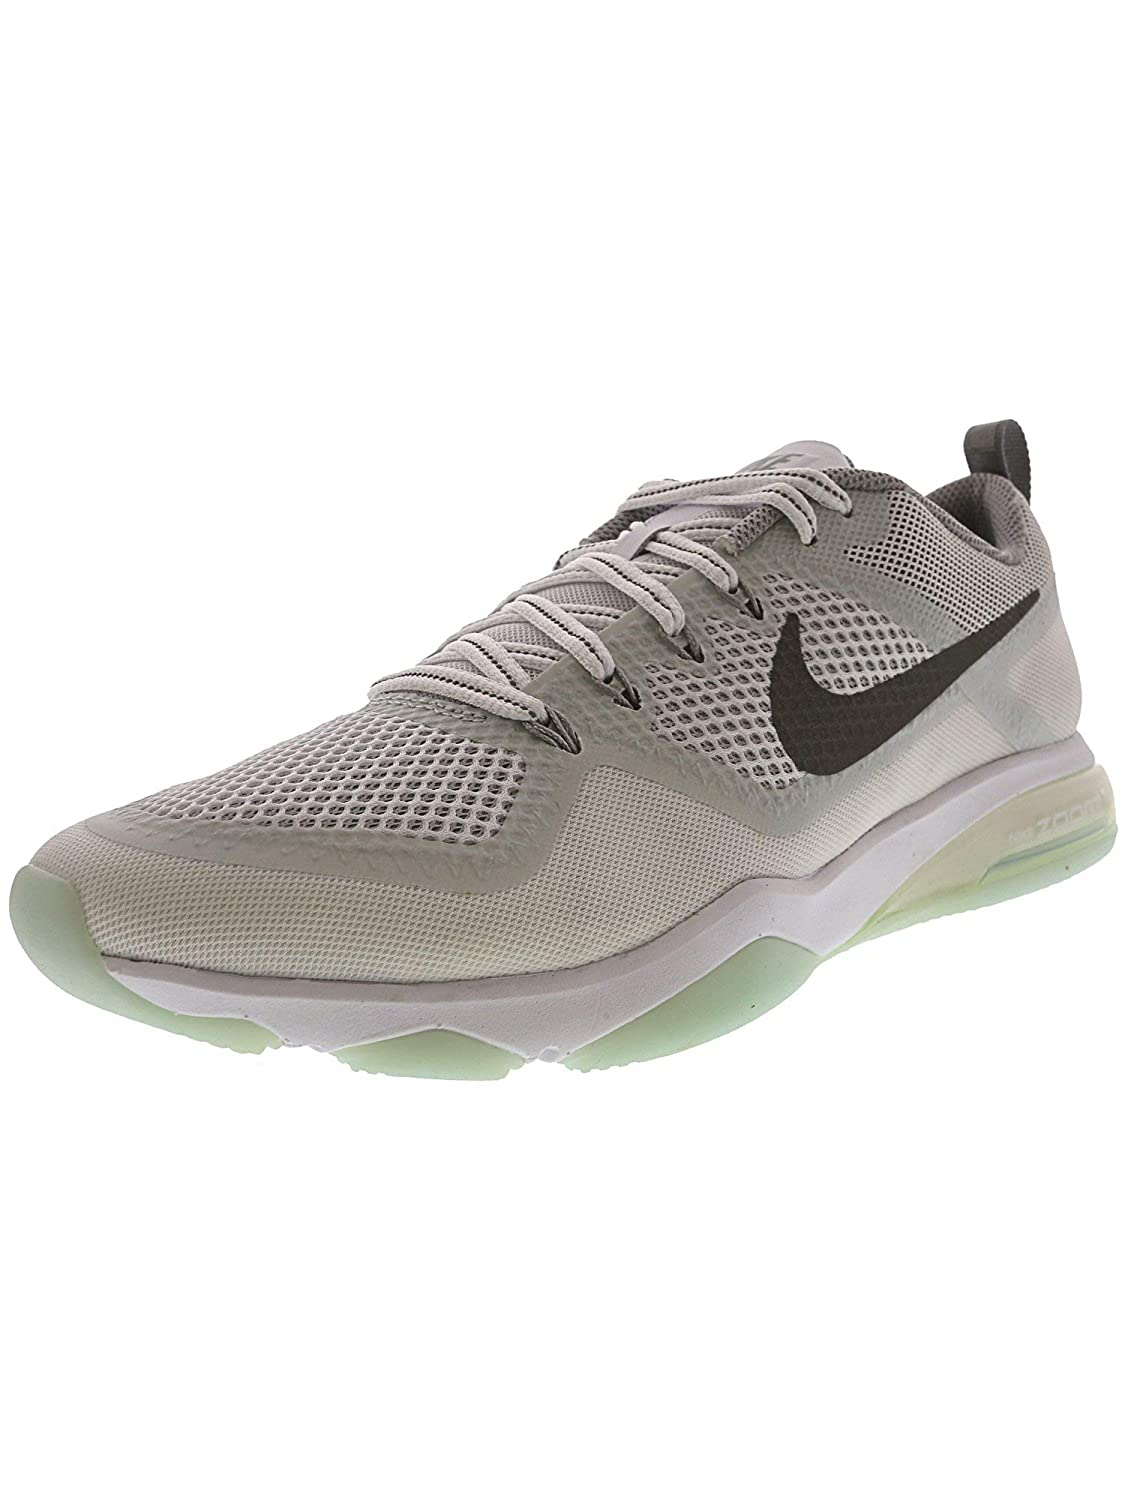 Nike Damen WMNS Air Zoom Fitness Reflect Turnschuhe